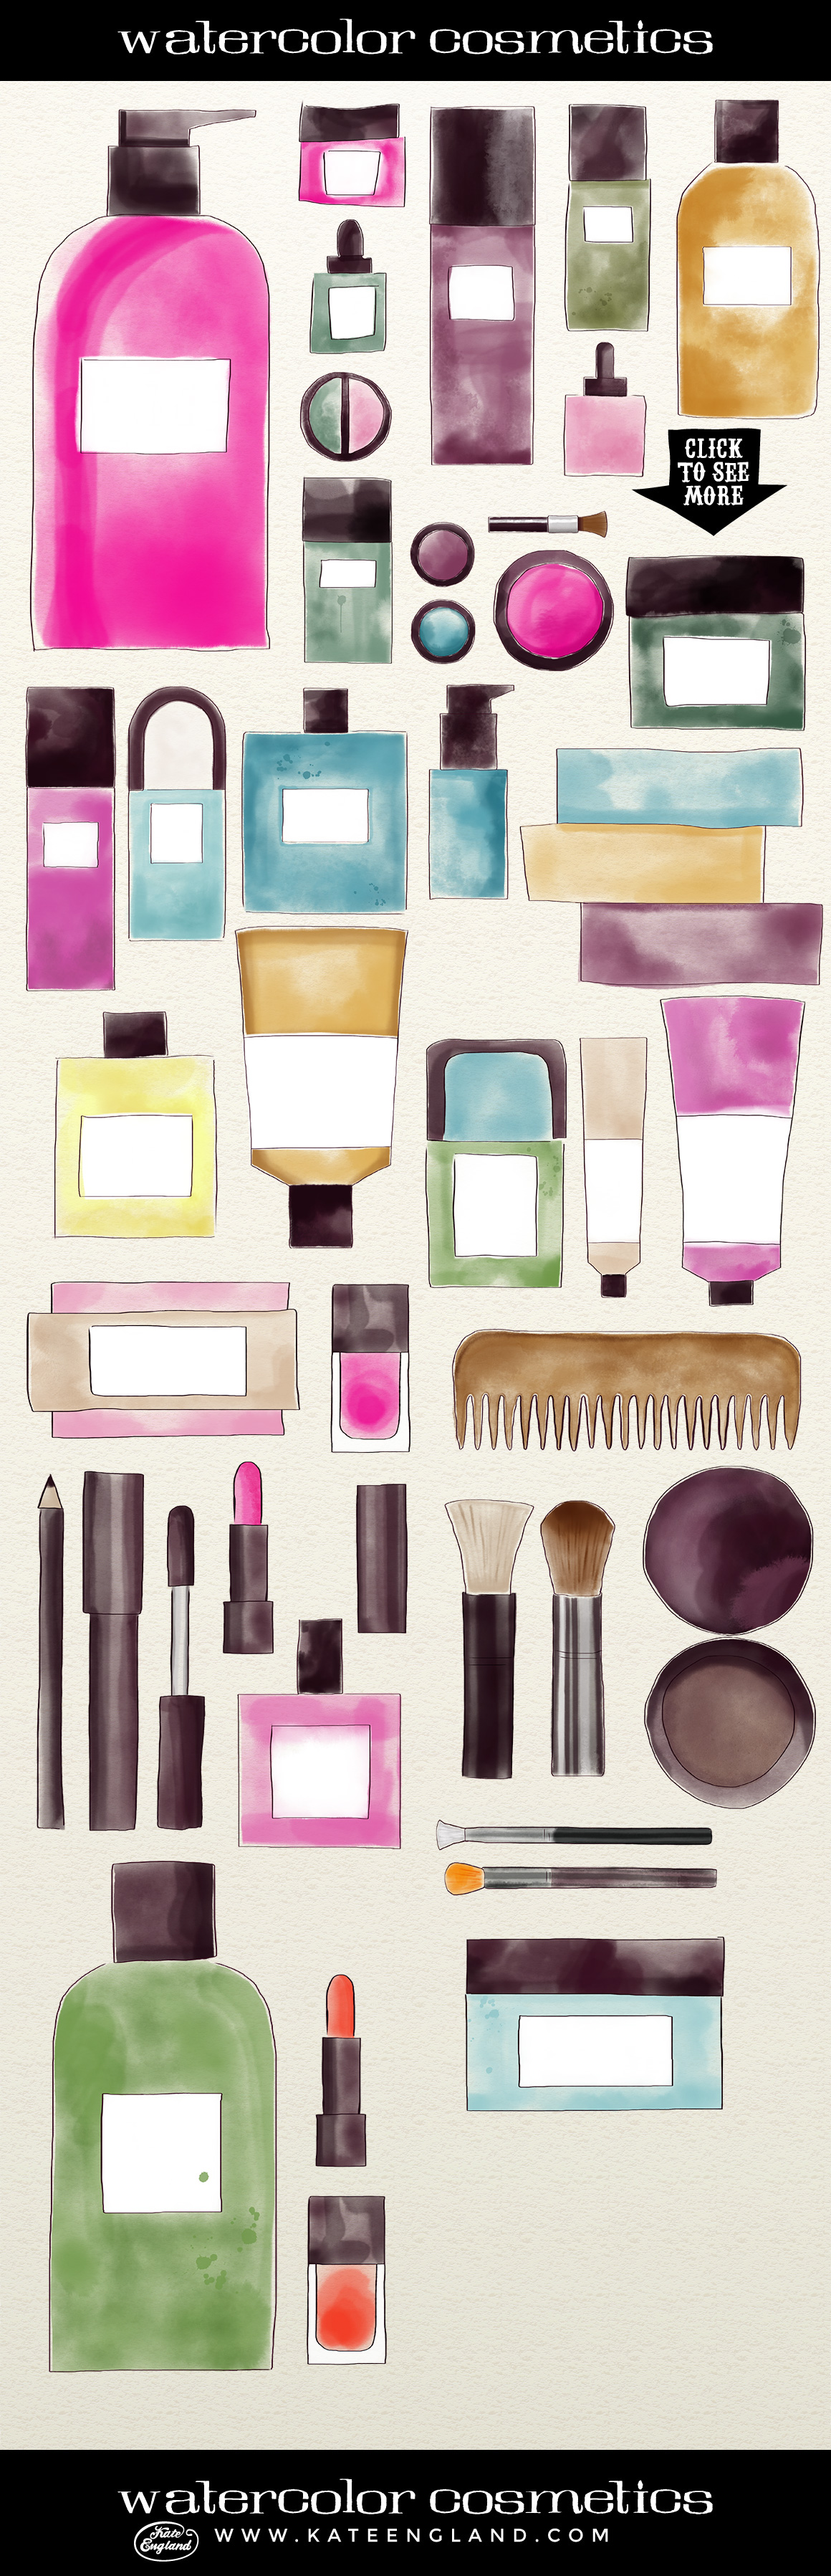 Watercolour Cosmetics  by Kate England.